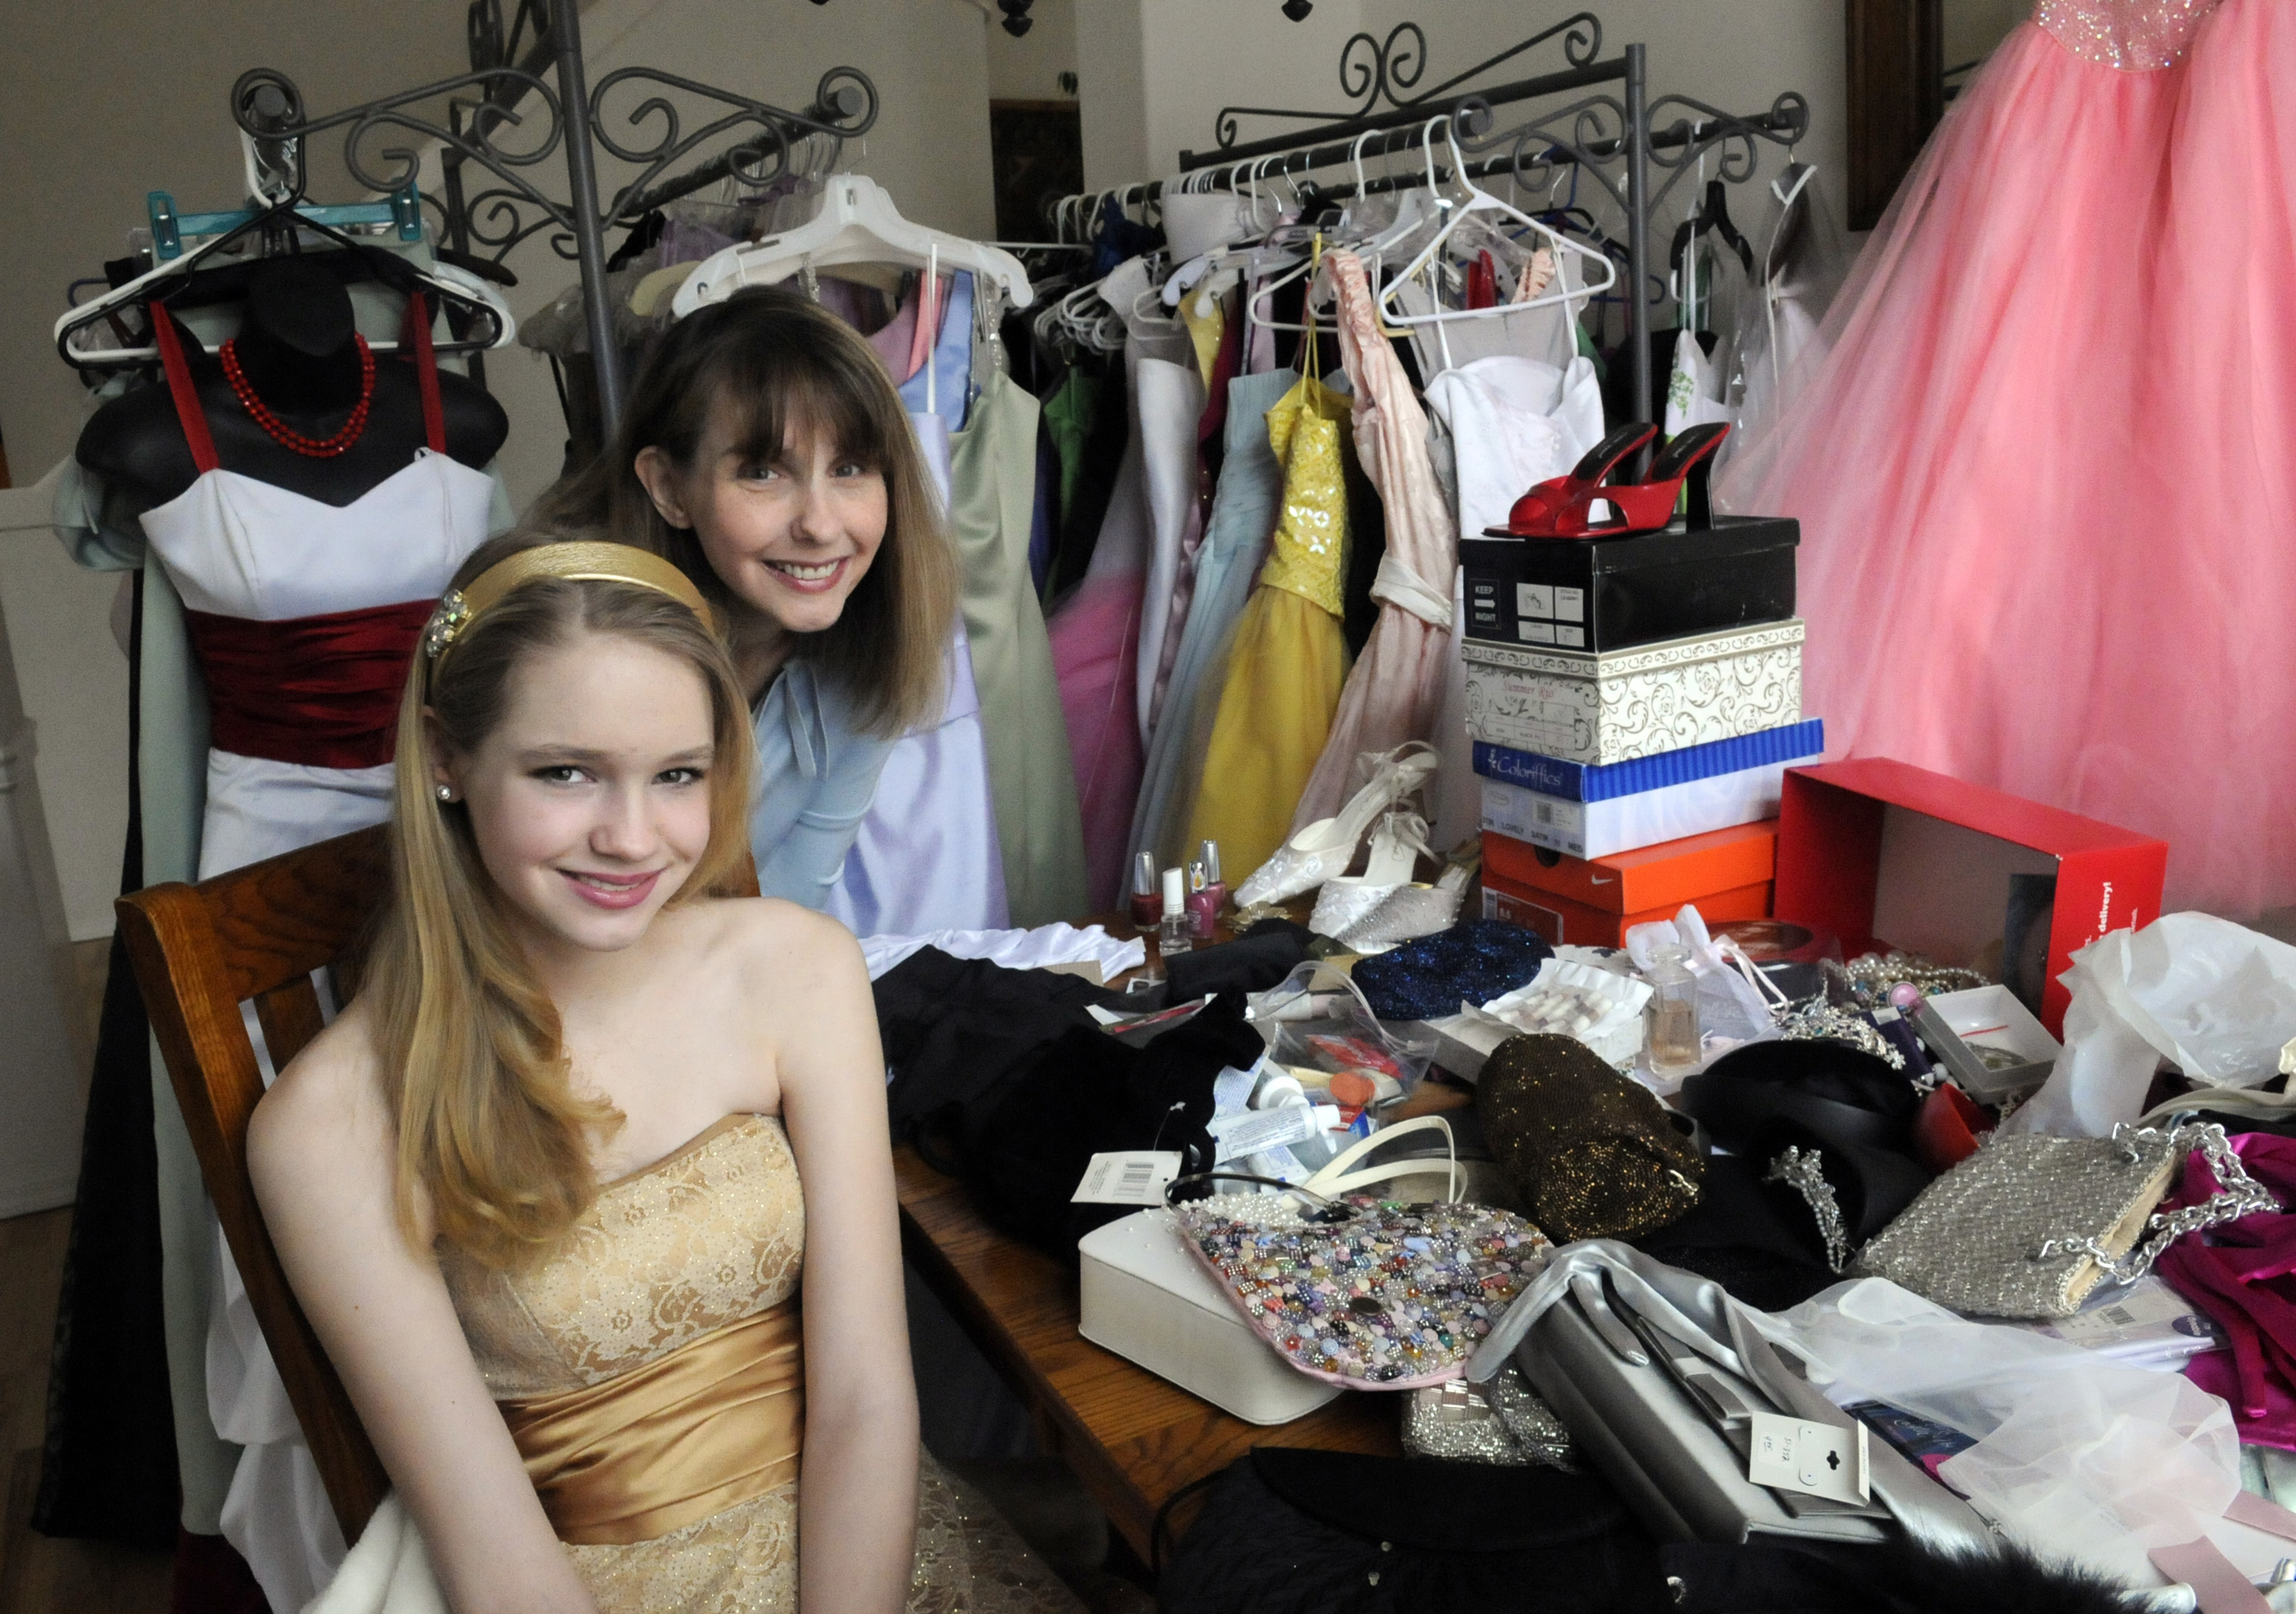 Spokane woman doles out donated attire for proms, parties | The ...